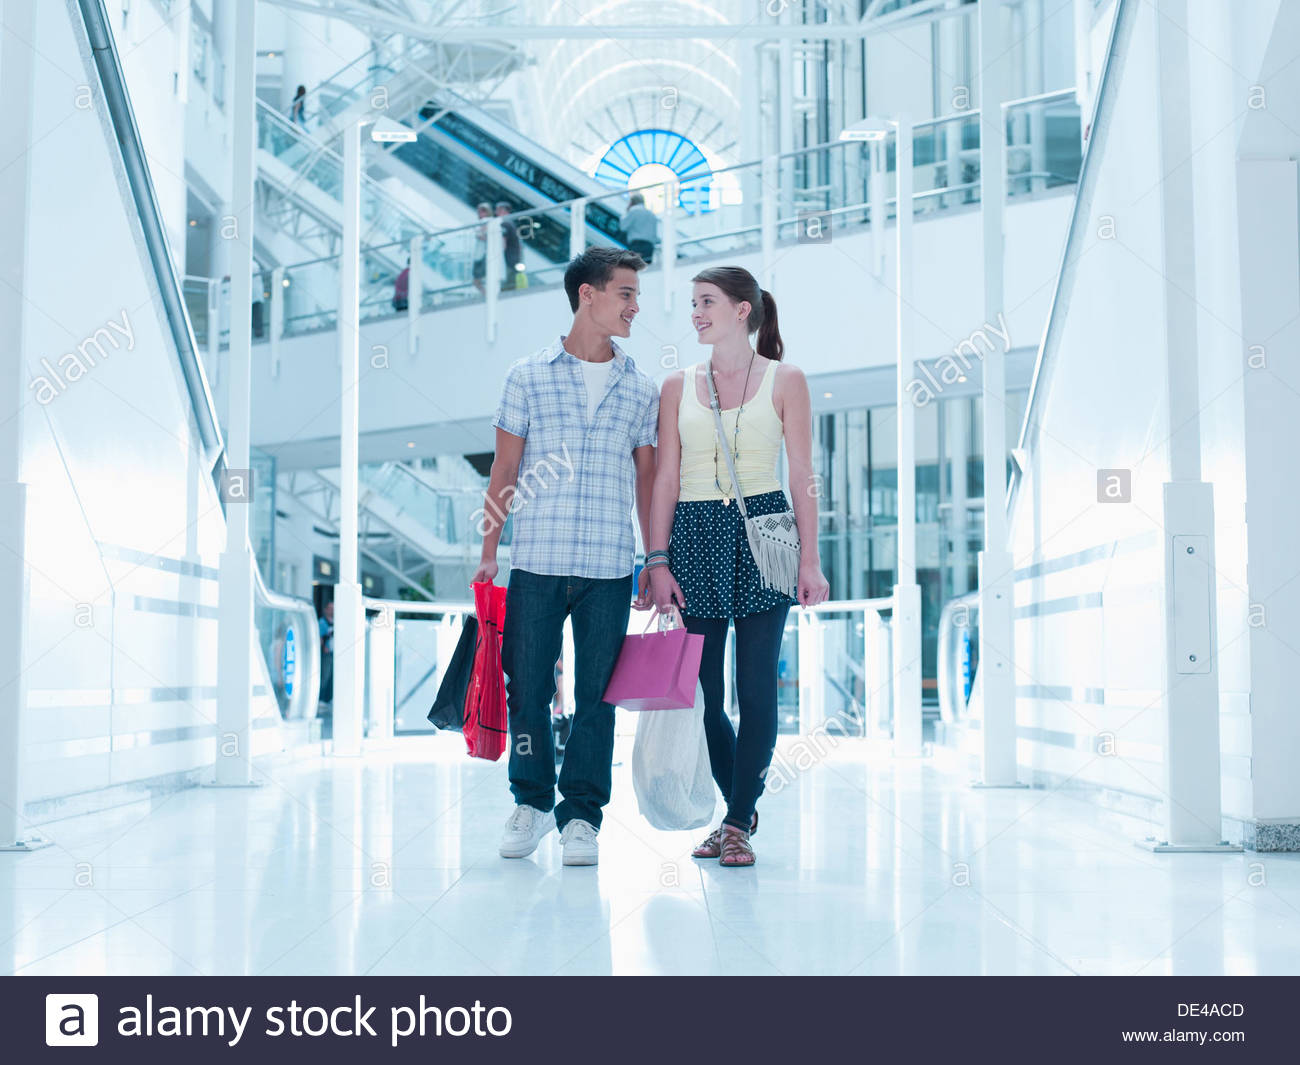 Smiling couple carrying shopping bags in mall Photo Stock